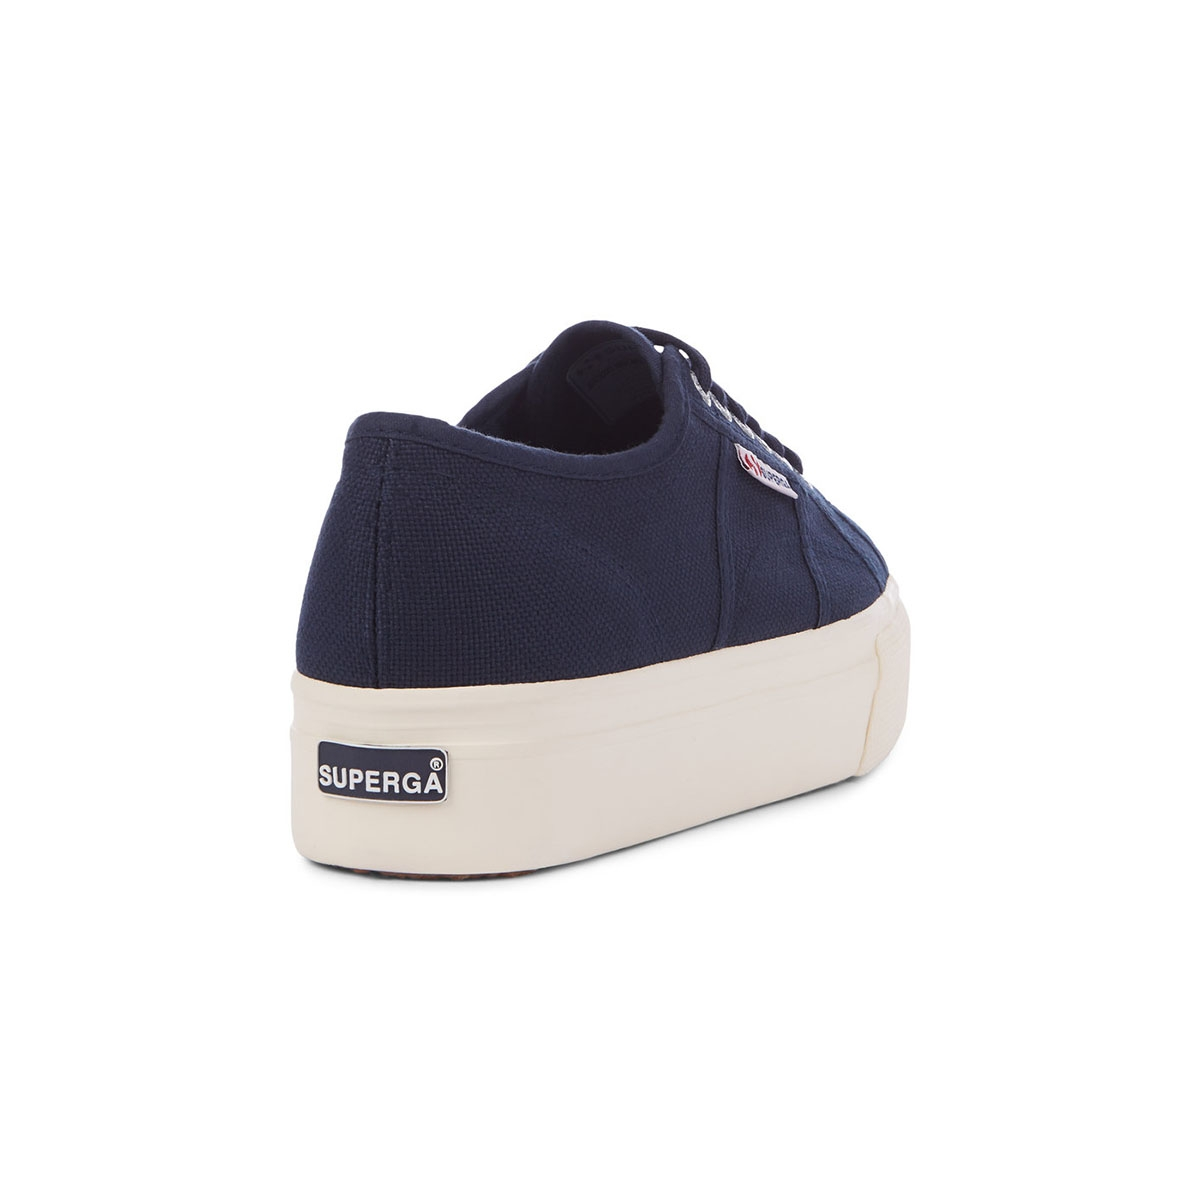 New Authentic Superga 2790 Acotw Platform Classic Schuhes Sneakers All Größes NIB